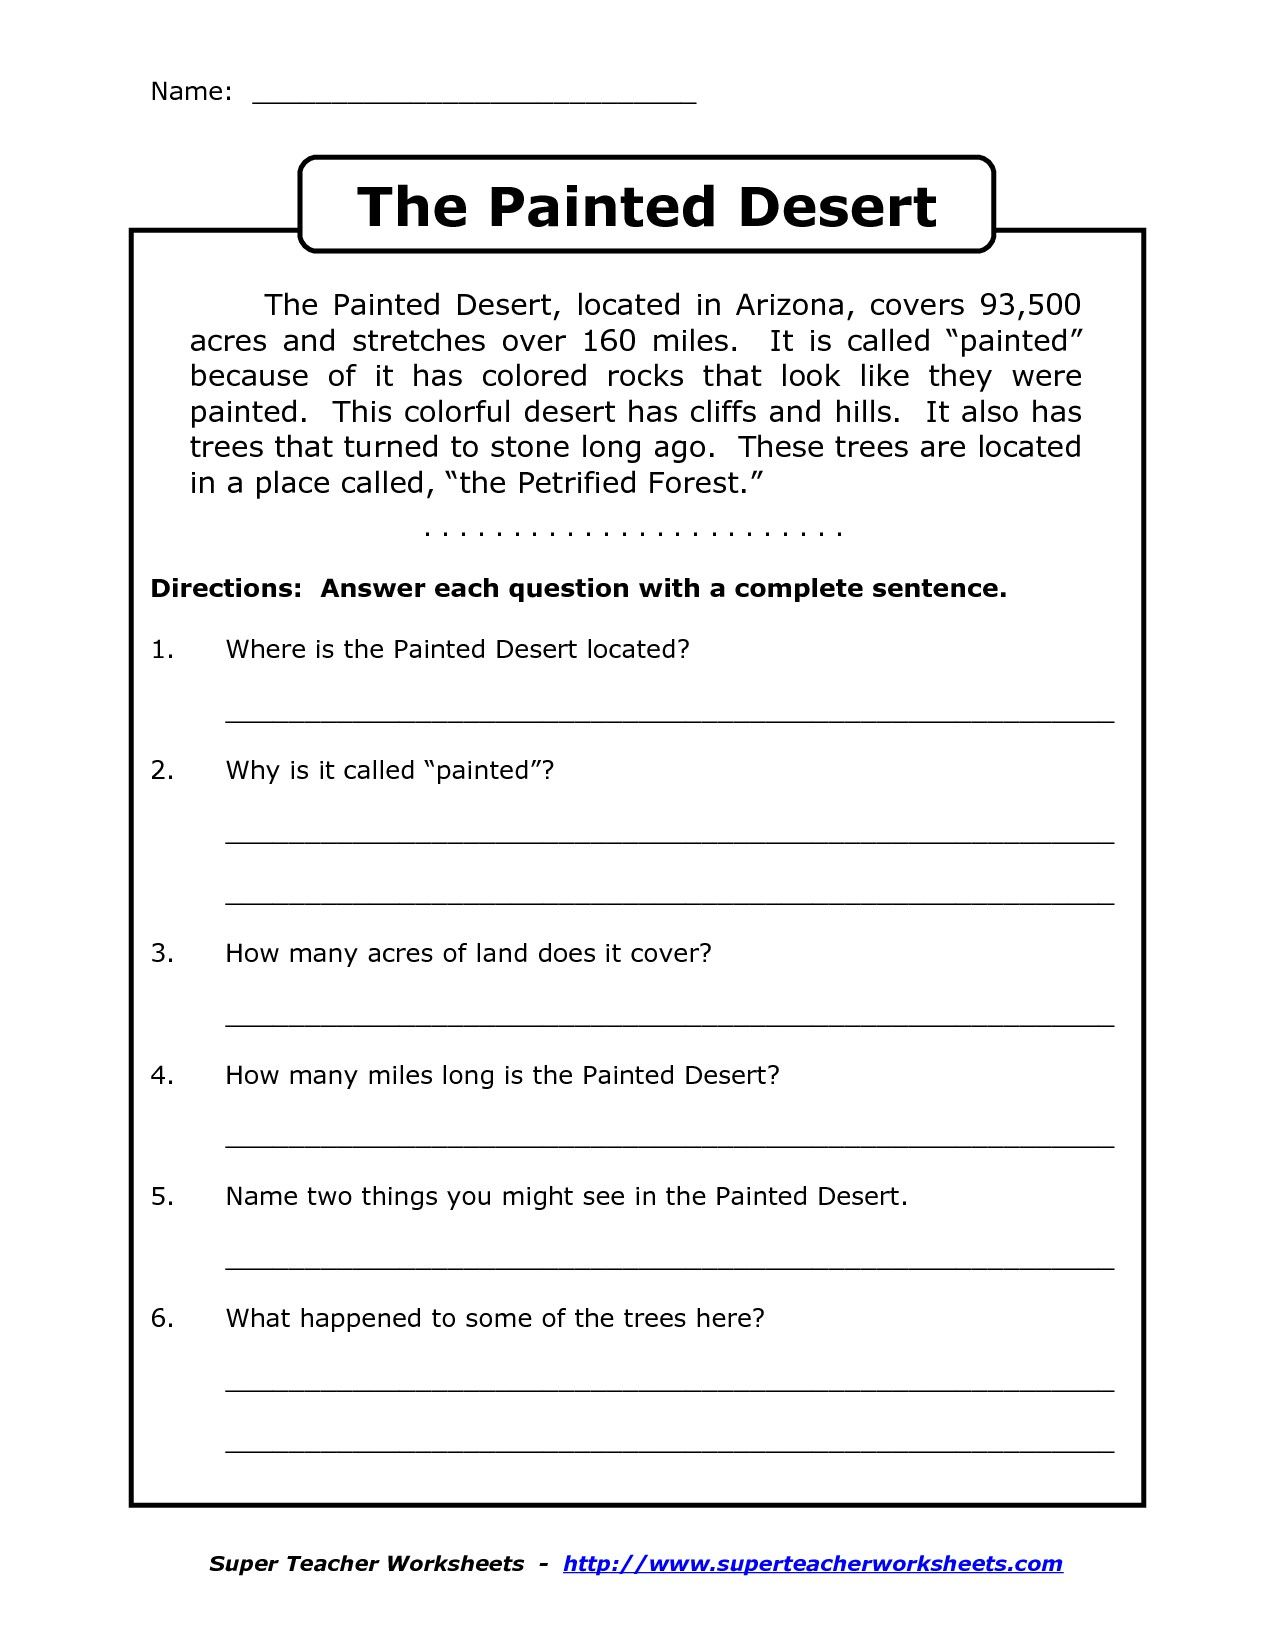 Worksheet Comprehension Exercises For Grade 1 1000 images about tina2 on pinterest reading comprehension and morning work